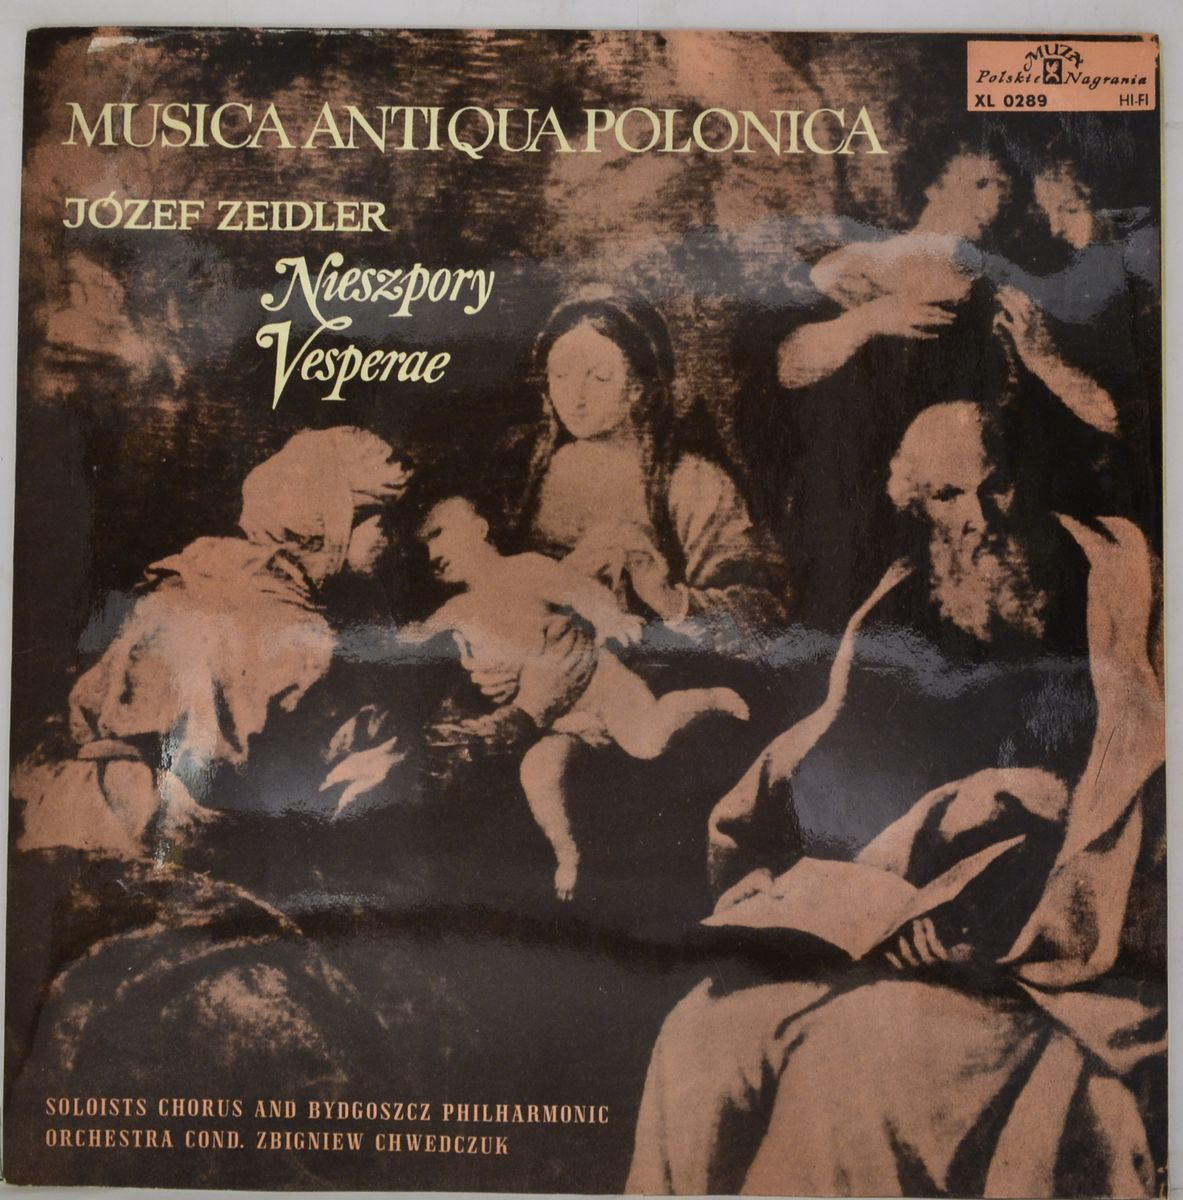 Jozef Zeidler – Nieszpory. Vesperae (1787) (LP) tenor saxophone instrument 54 selmer b flat saxophone tenor antique copper free shipping sound quality promotions sax